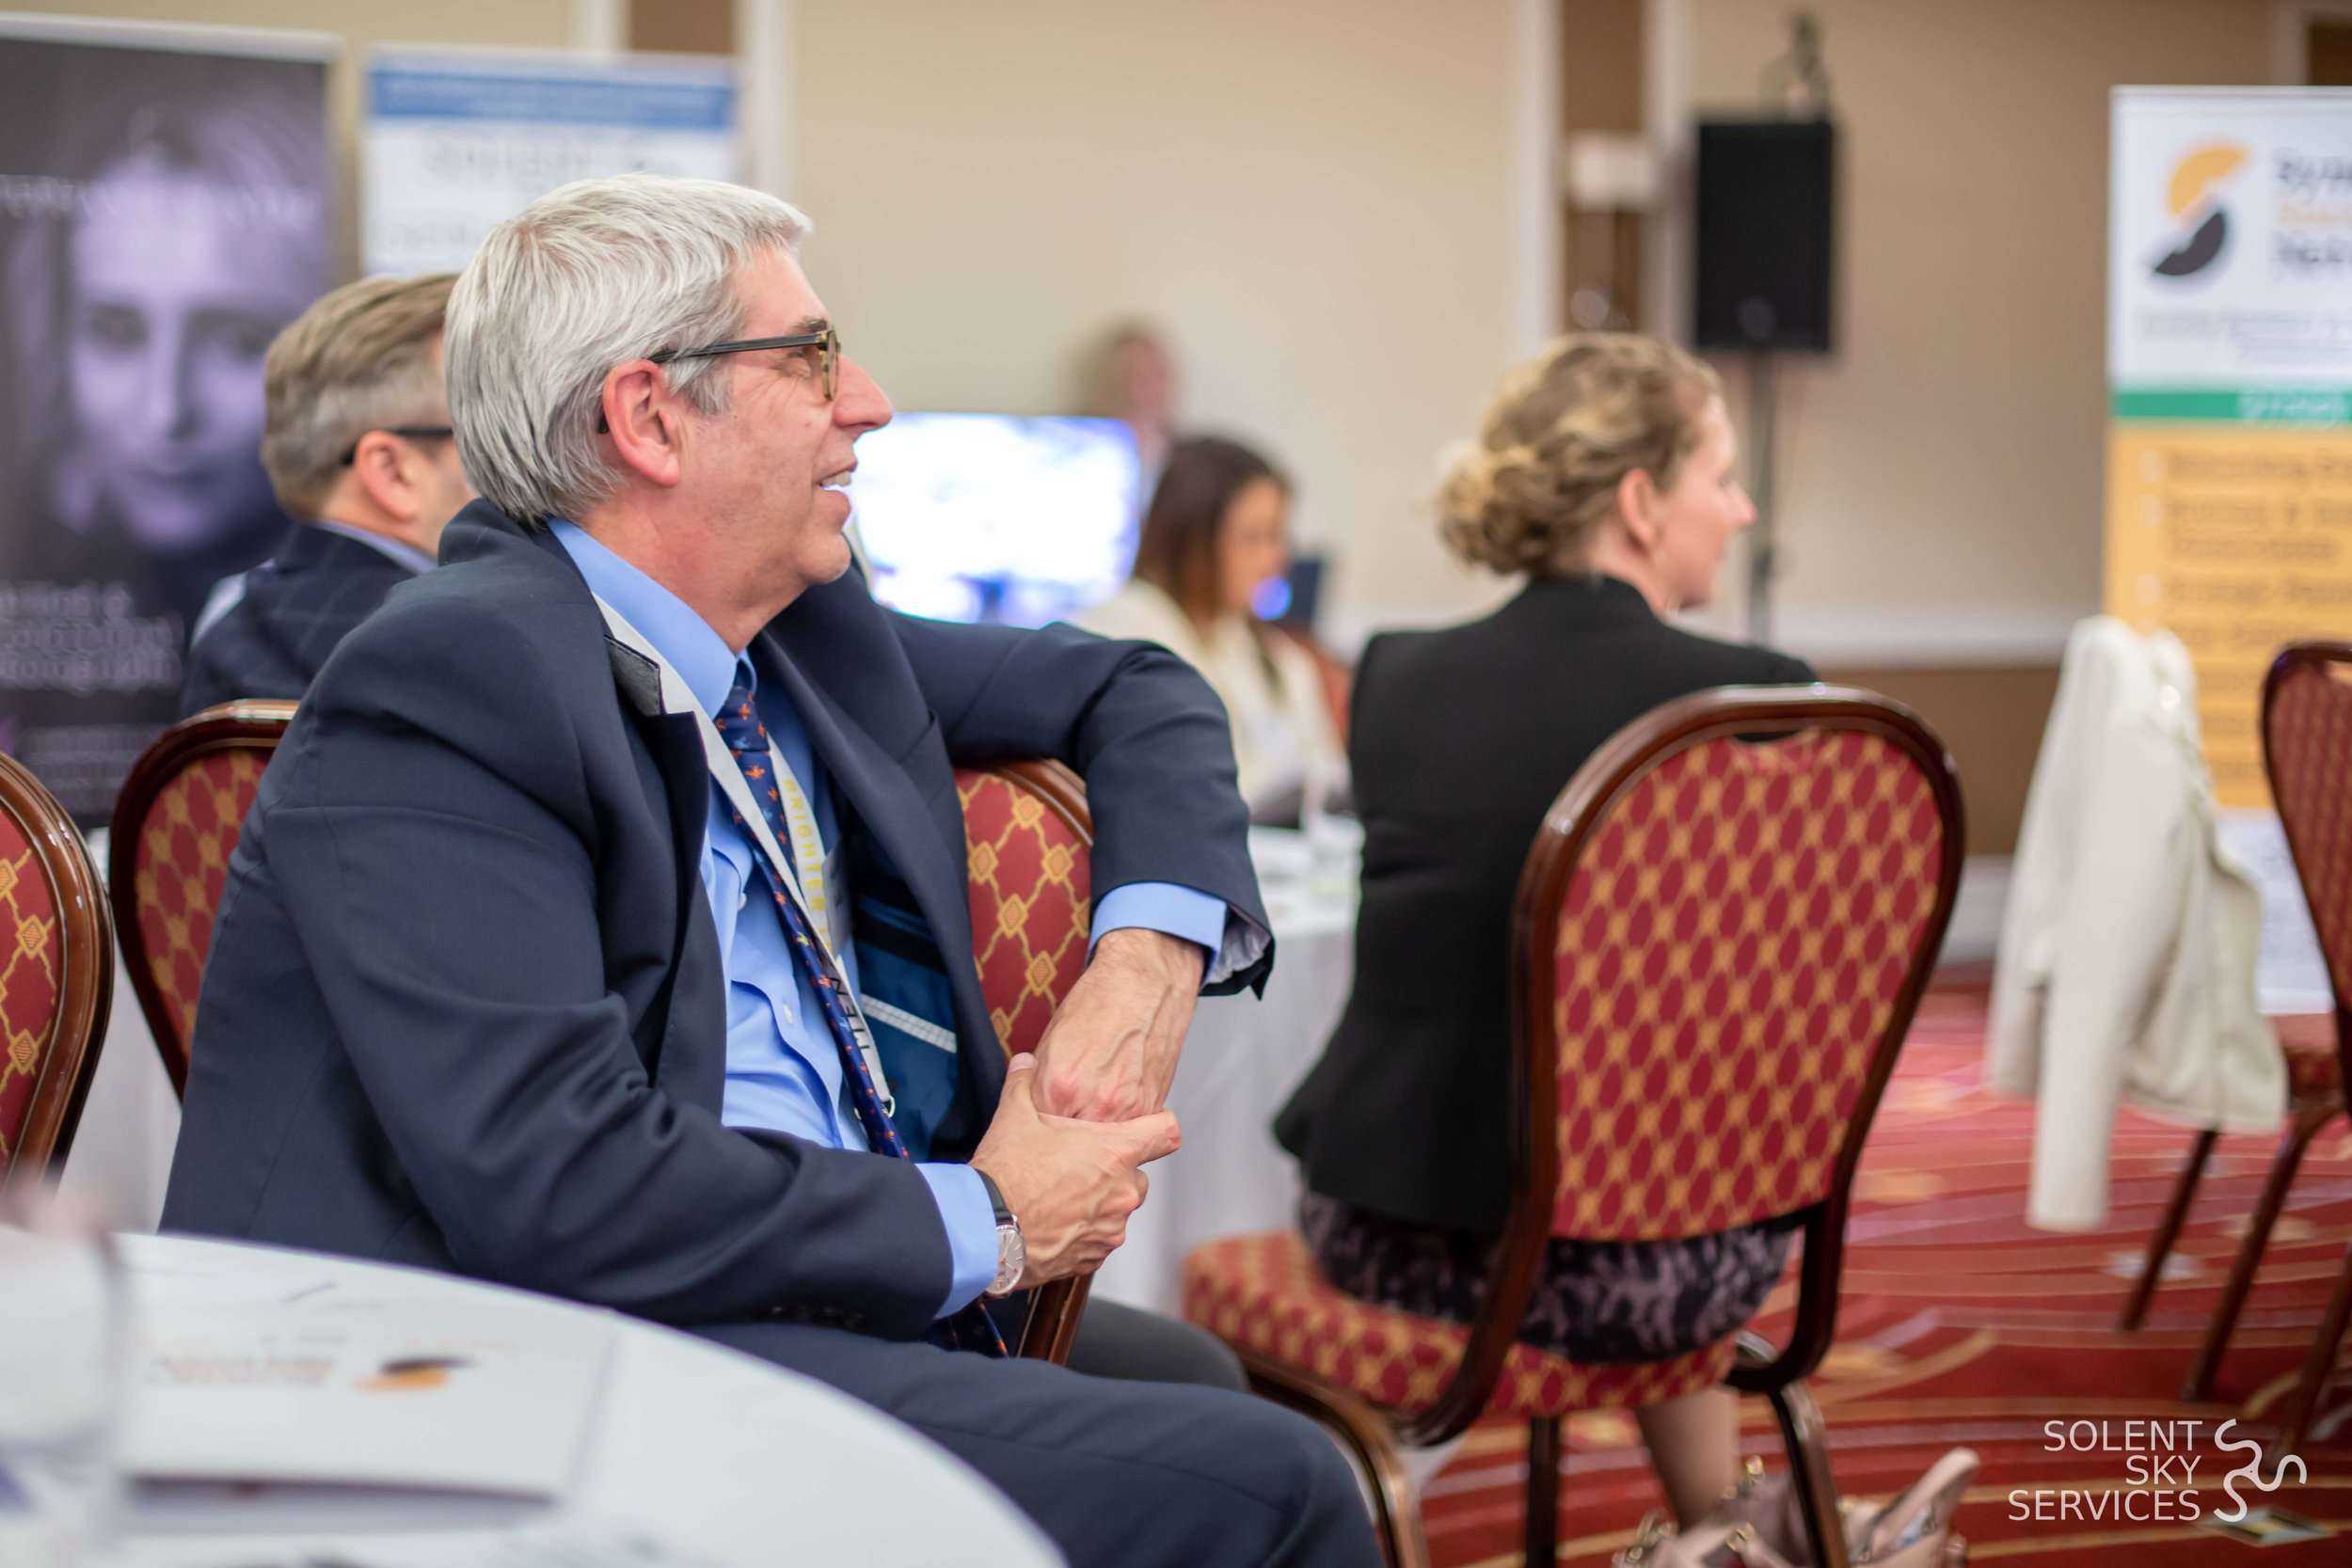 Synergy Success Networking Event #2 - Solent Sky Services-57.JPG